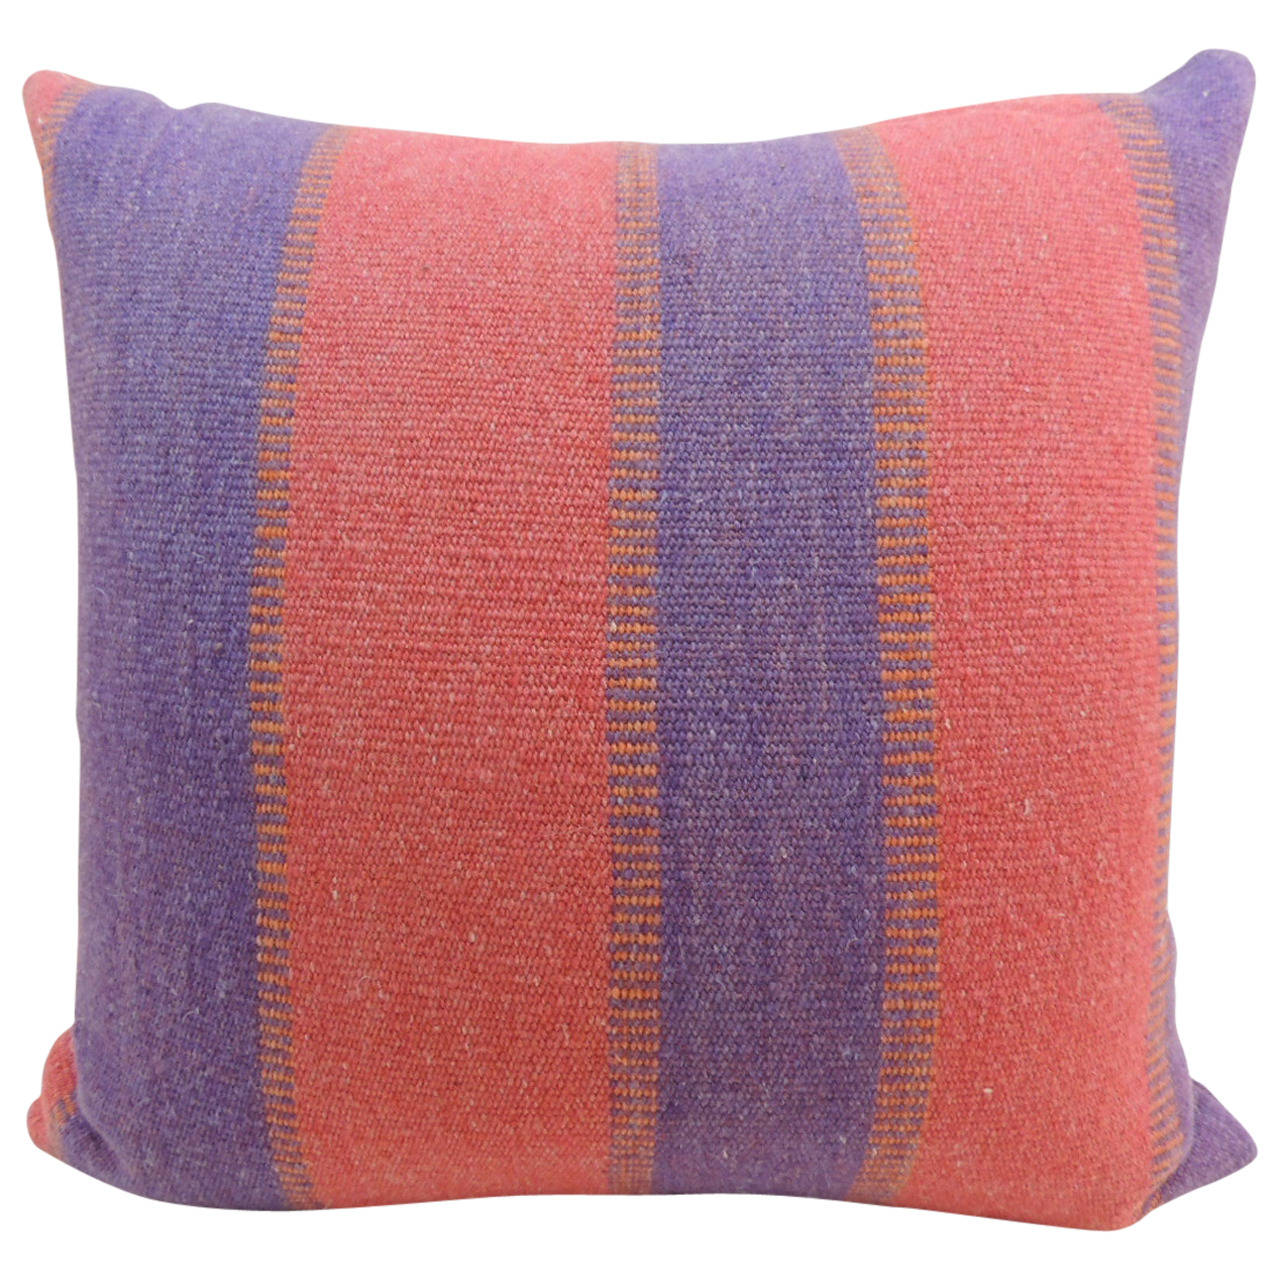 Vintage Red and Purple Stripe Alpaca Floor Decorative Pillow For Sale at 1stdibs